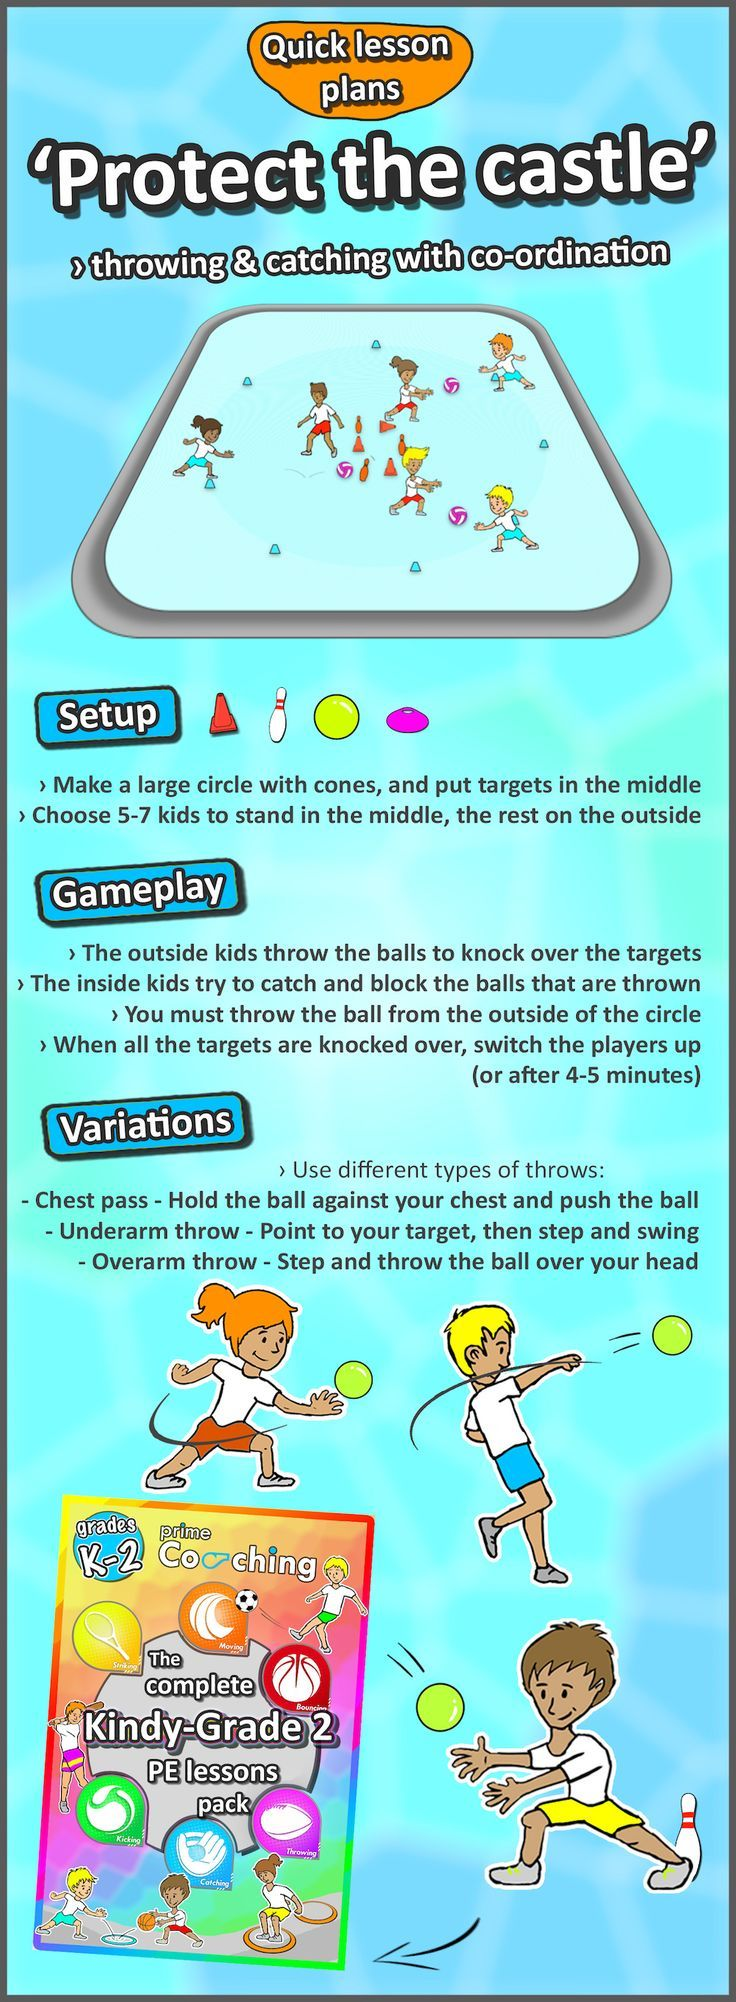 How to teach catching skills › The best PE lesson ideas - Develop your kids throwing and catching with this awesome game • Protect the castle • Check out the site for more sport activities